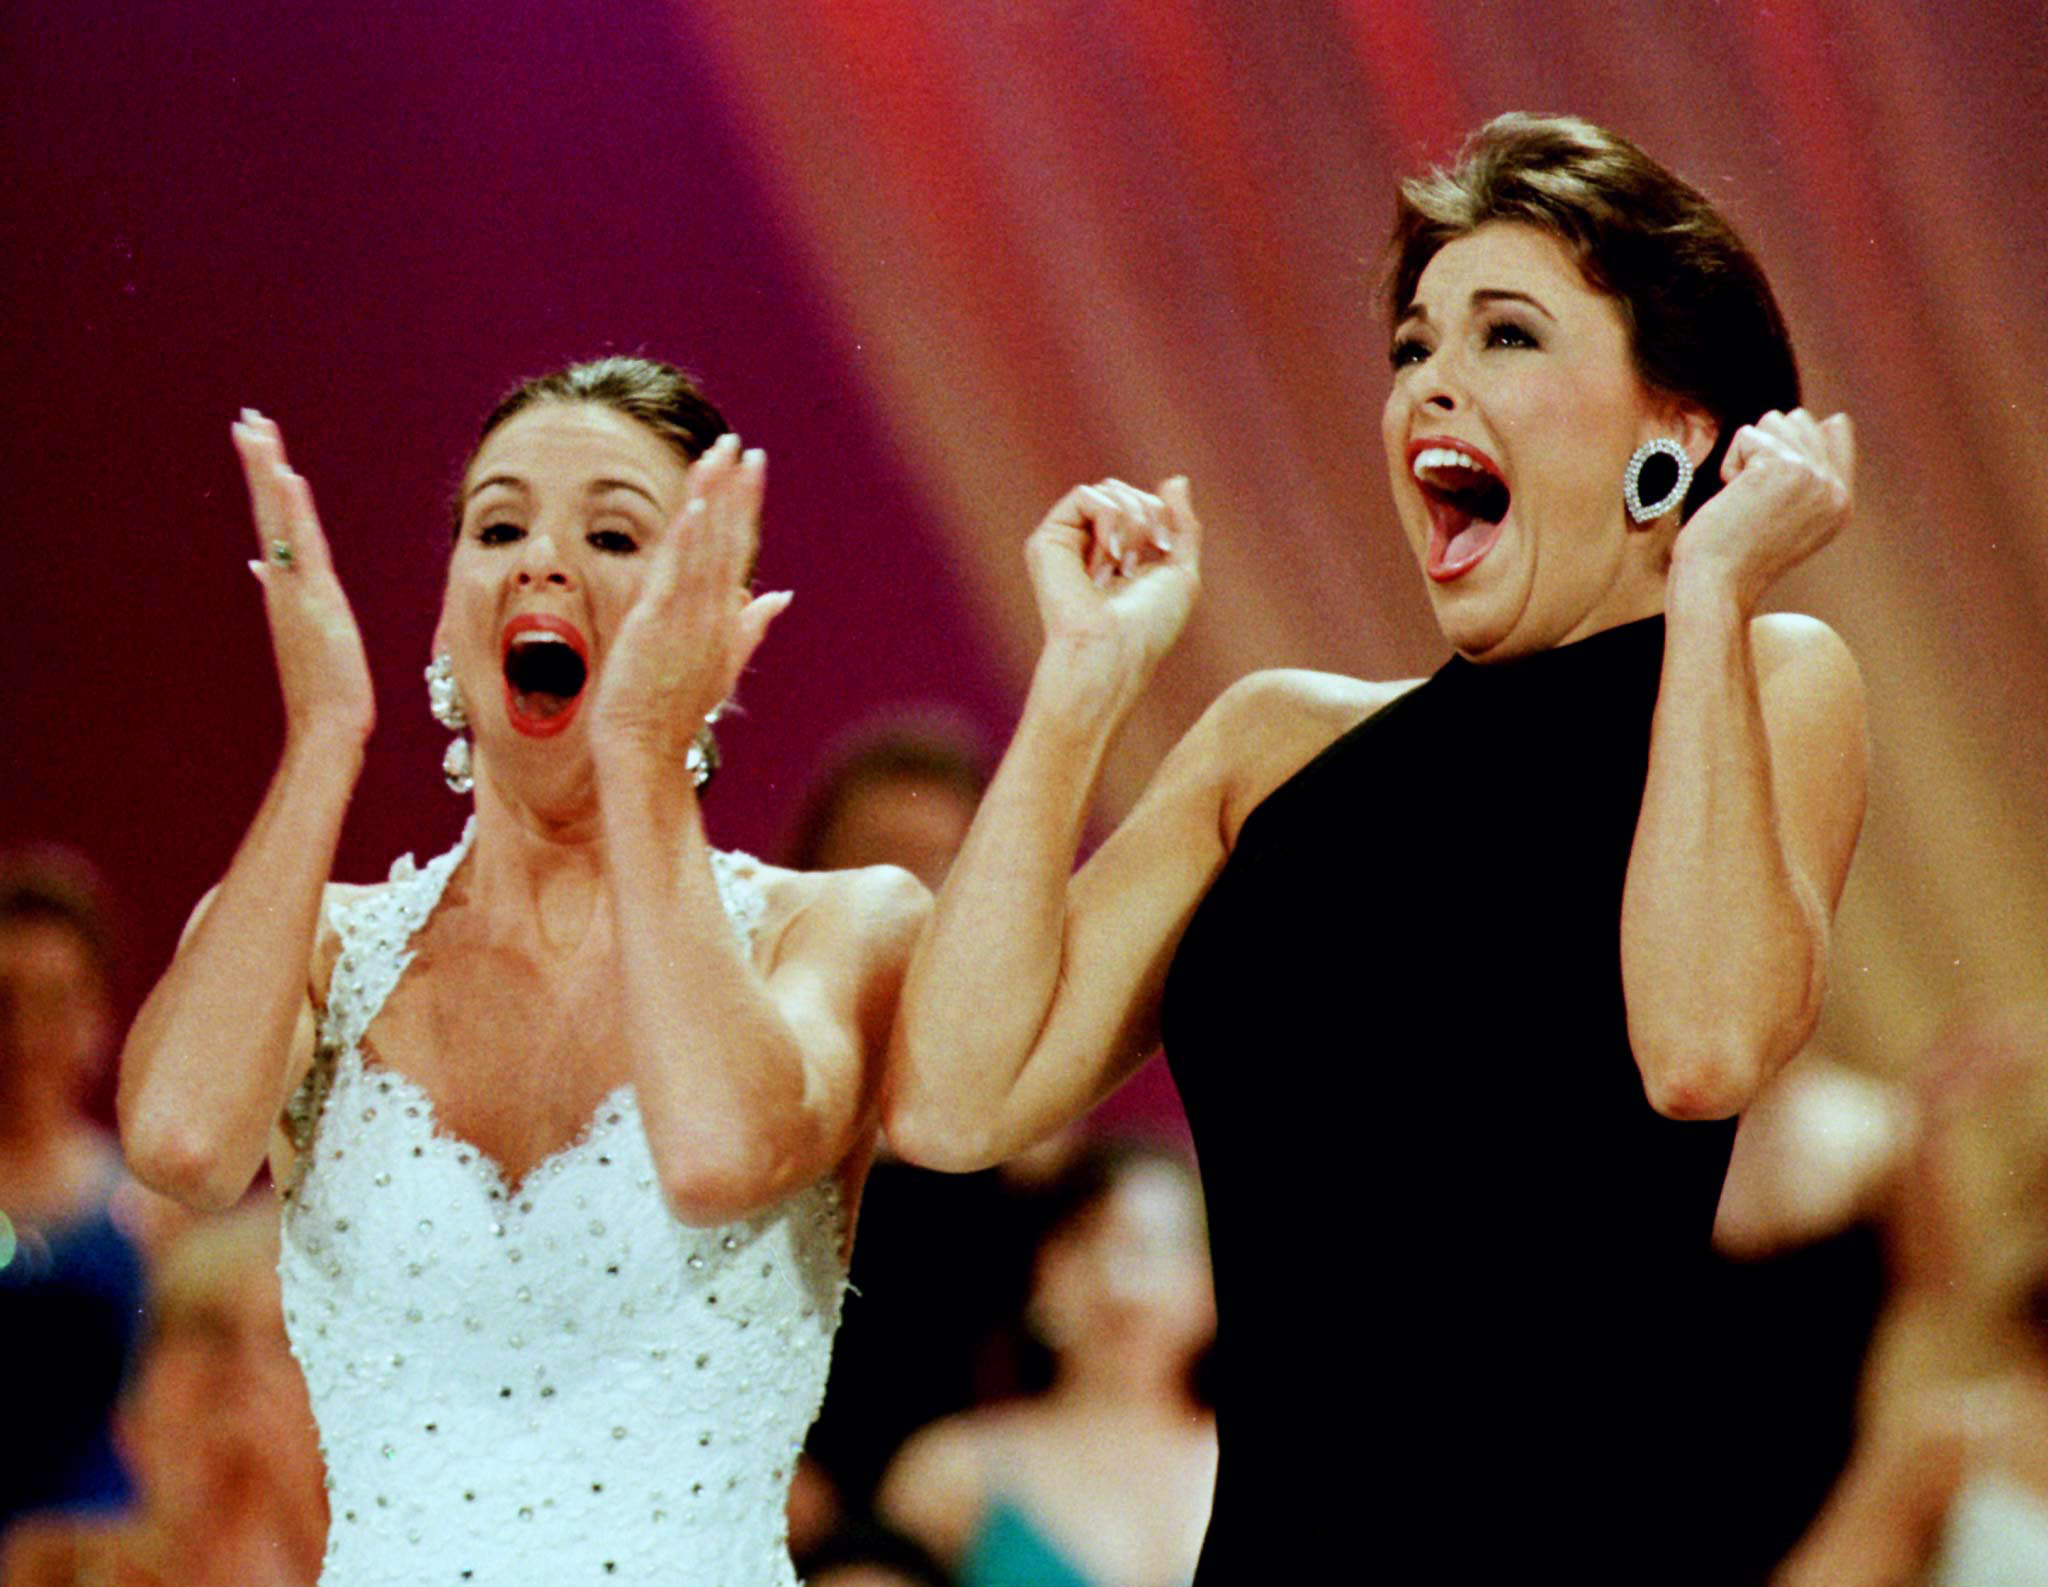 Miss America 1999 Nicole Johnson (R) from Virginia reacts with first runner up Kelli Bradshaw (L) from North Carolina, after Johnson was named Miss America 1999 in Atlantic City, New Jersey on Sept. 21, 1998.